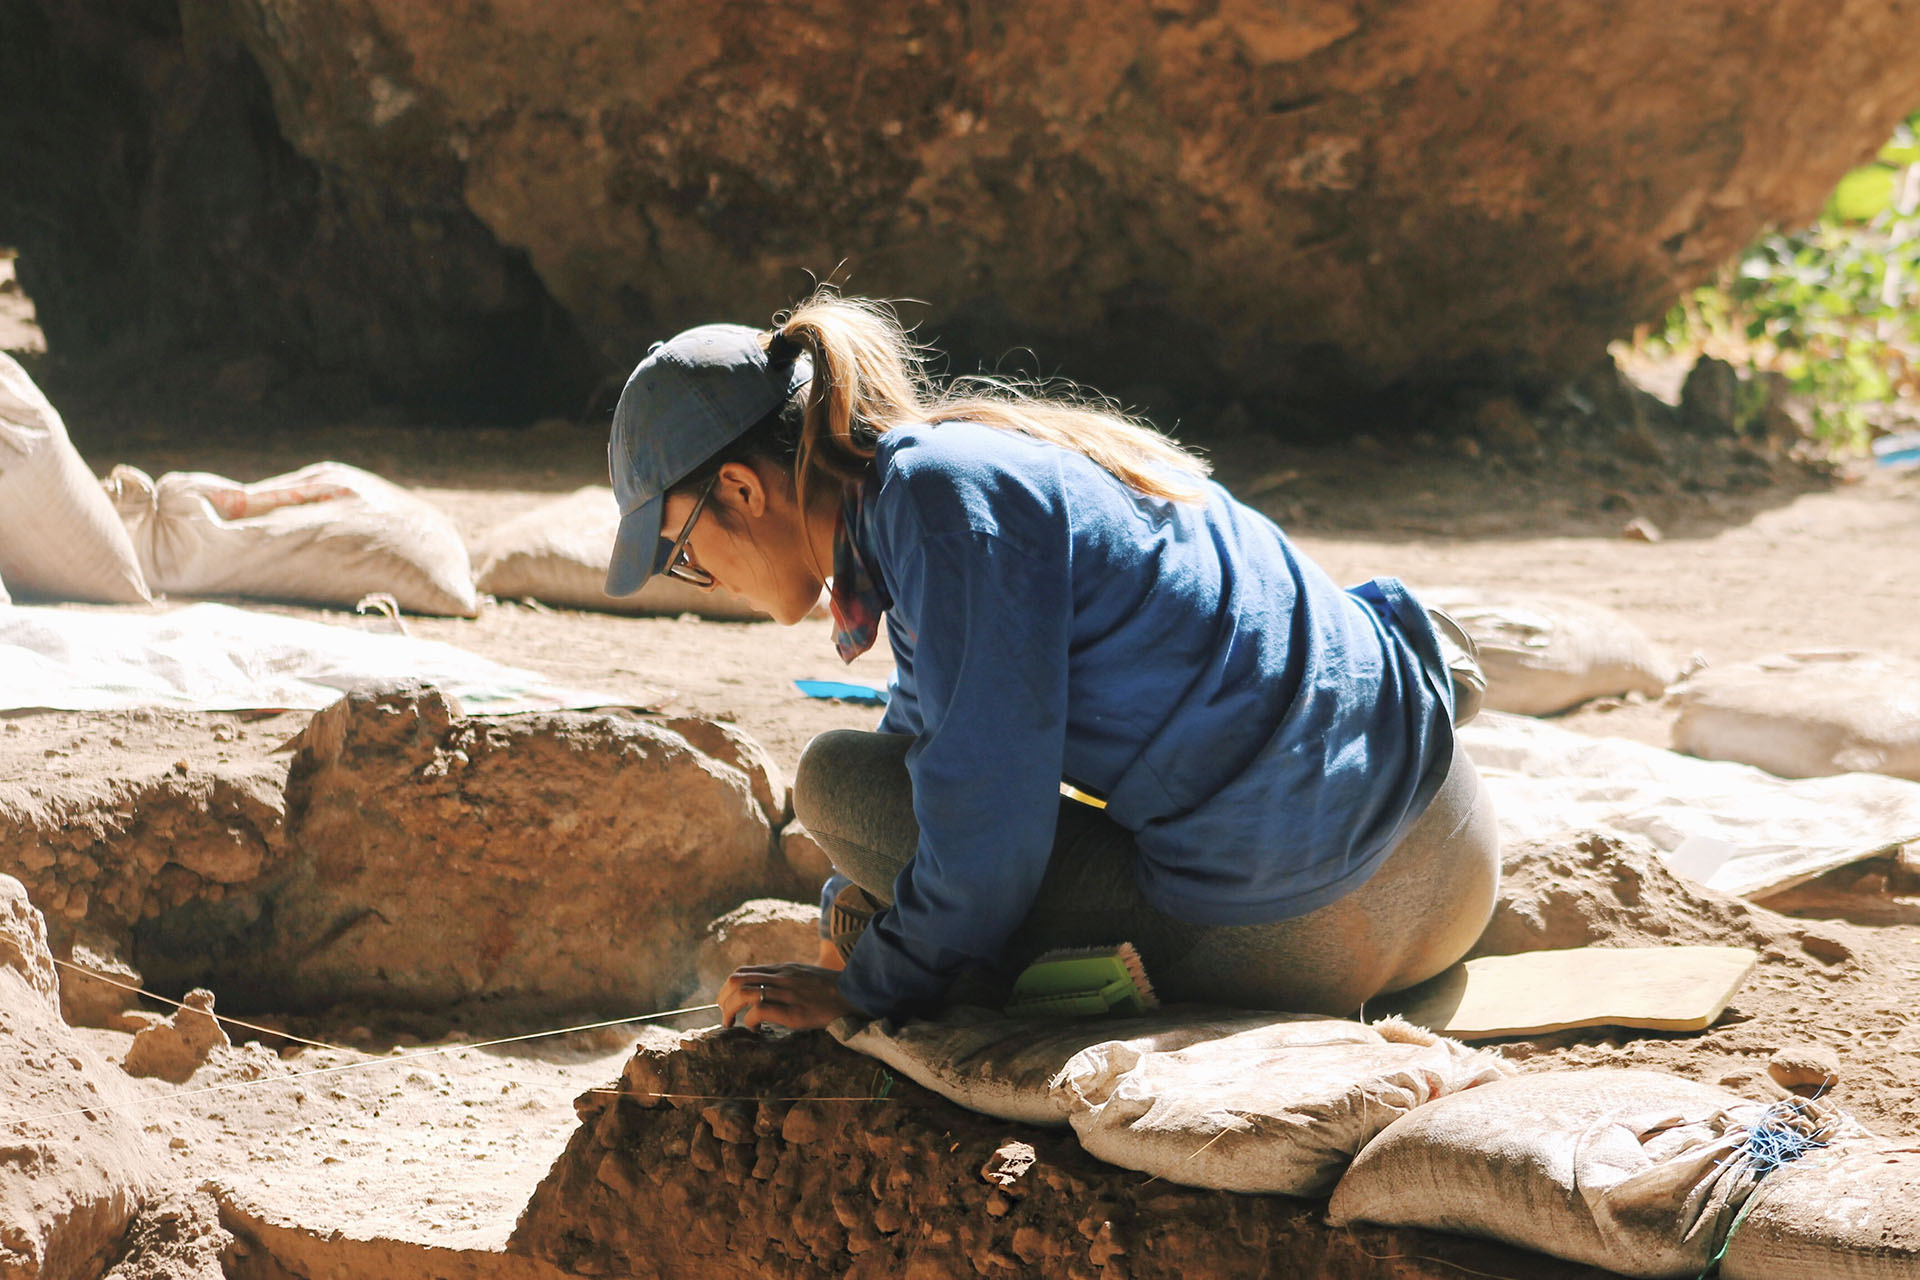 Archaeologist digging for artifacts